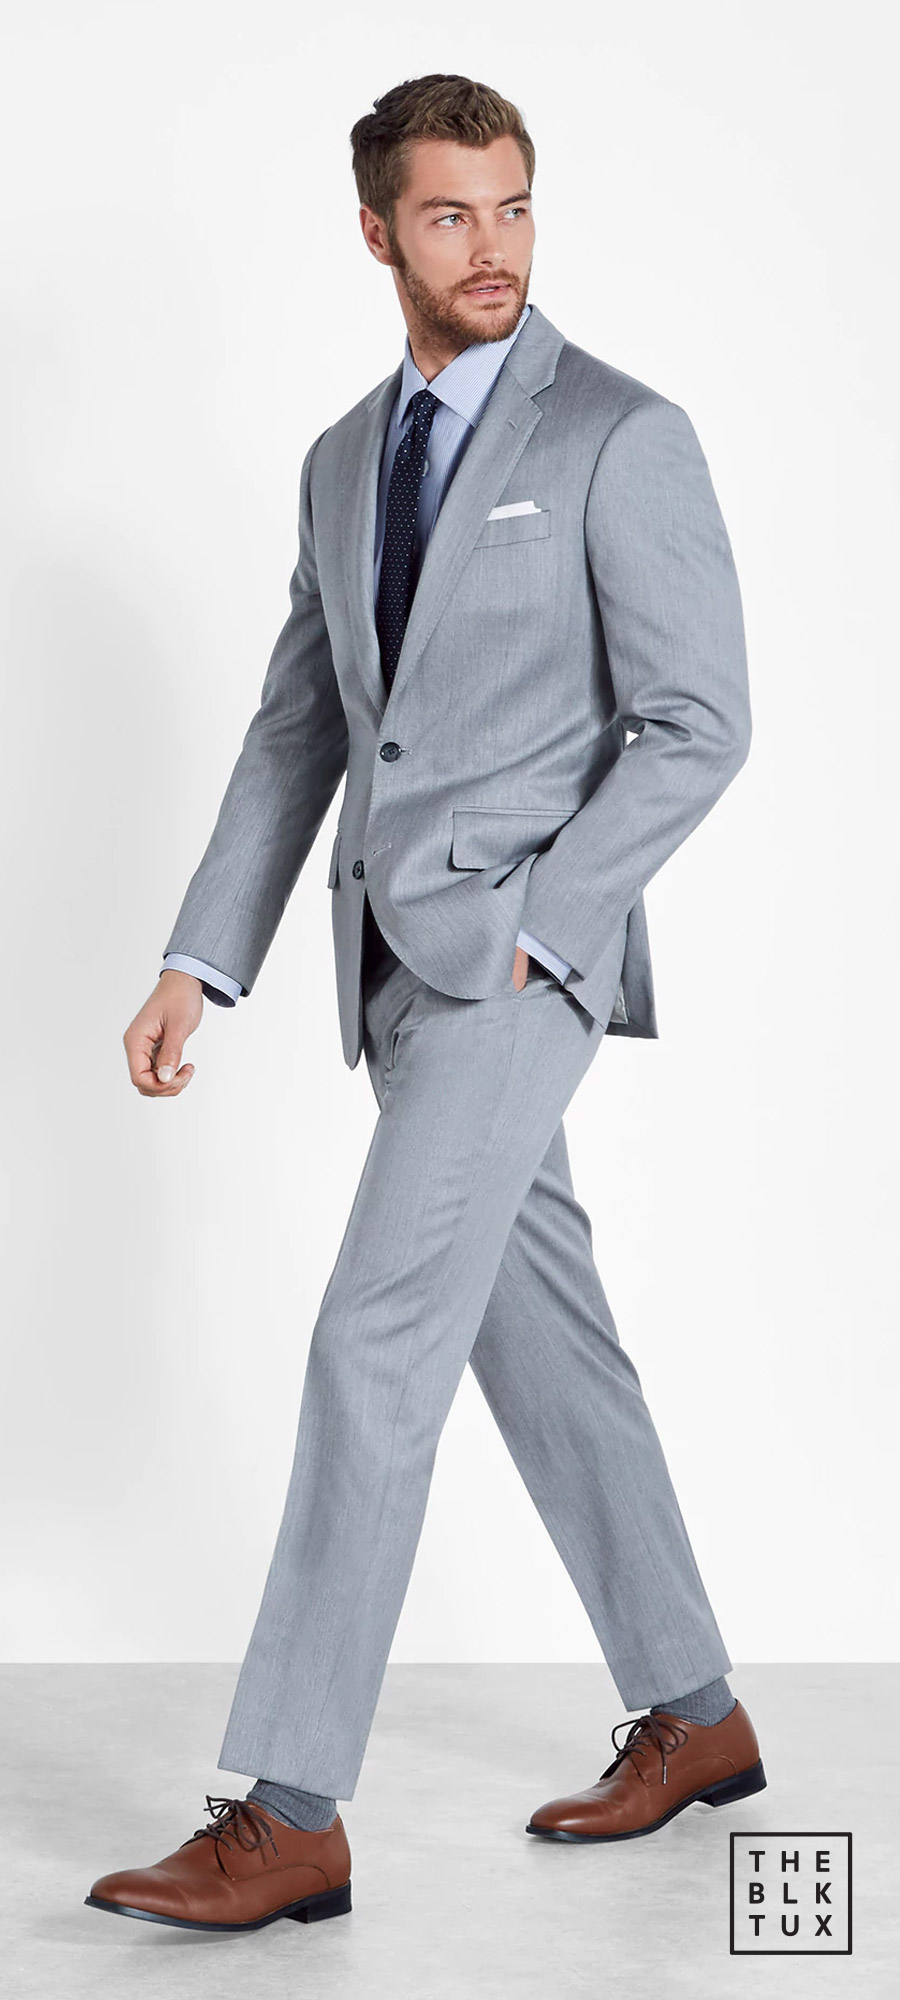 Suit Up in Style, The Black Tux Way - BridalPulse